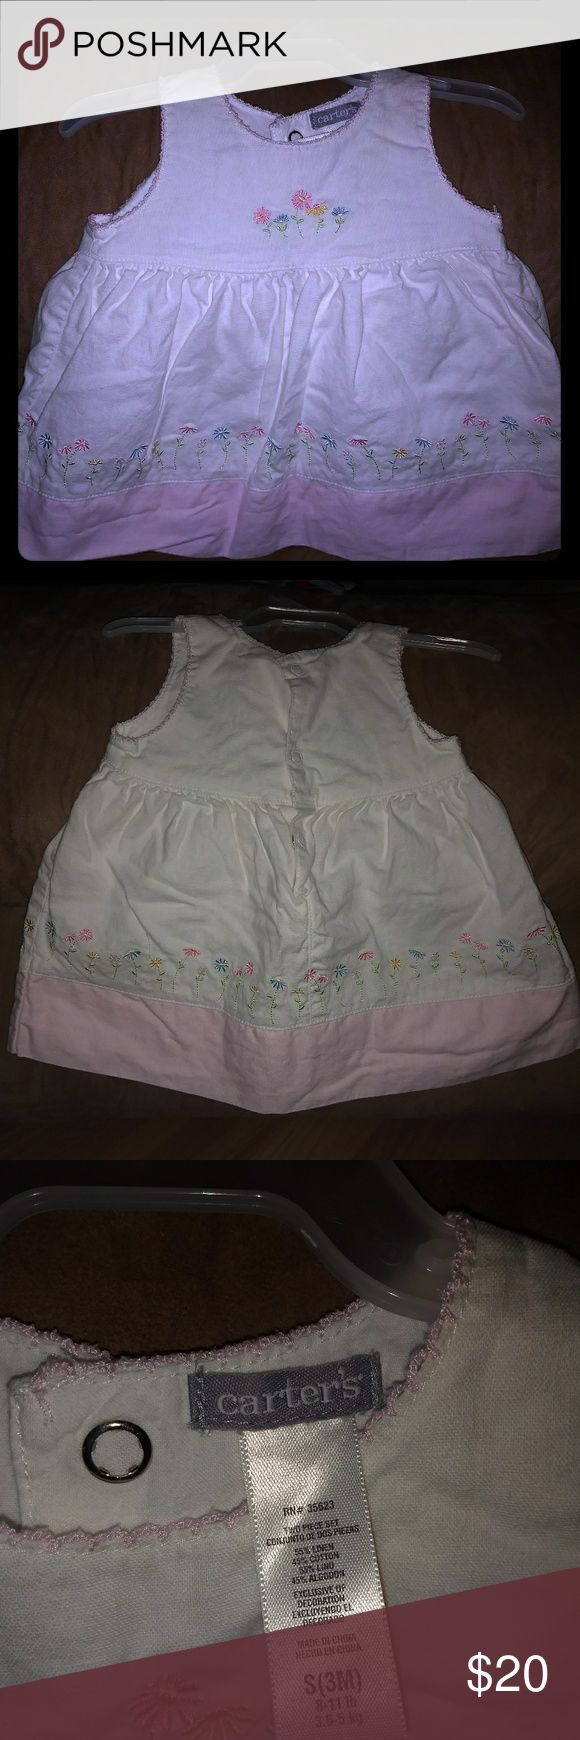 Little girl's Spring/Summer dress Super cute white with flowers Spring/Summer dress. Does have white liner underneath. Comes from smoke free home. Great condition. No spots or stains. Carter's Dresses